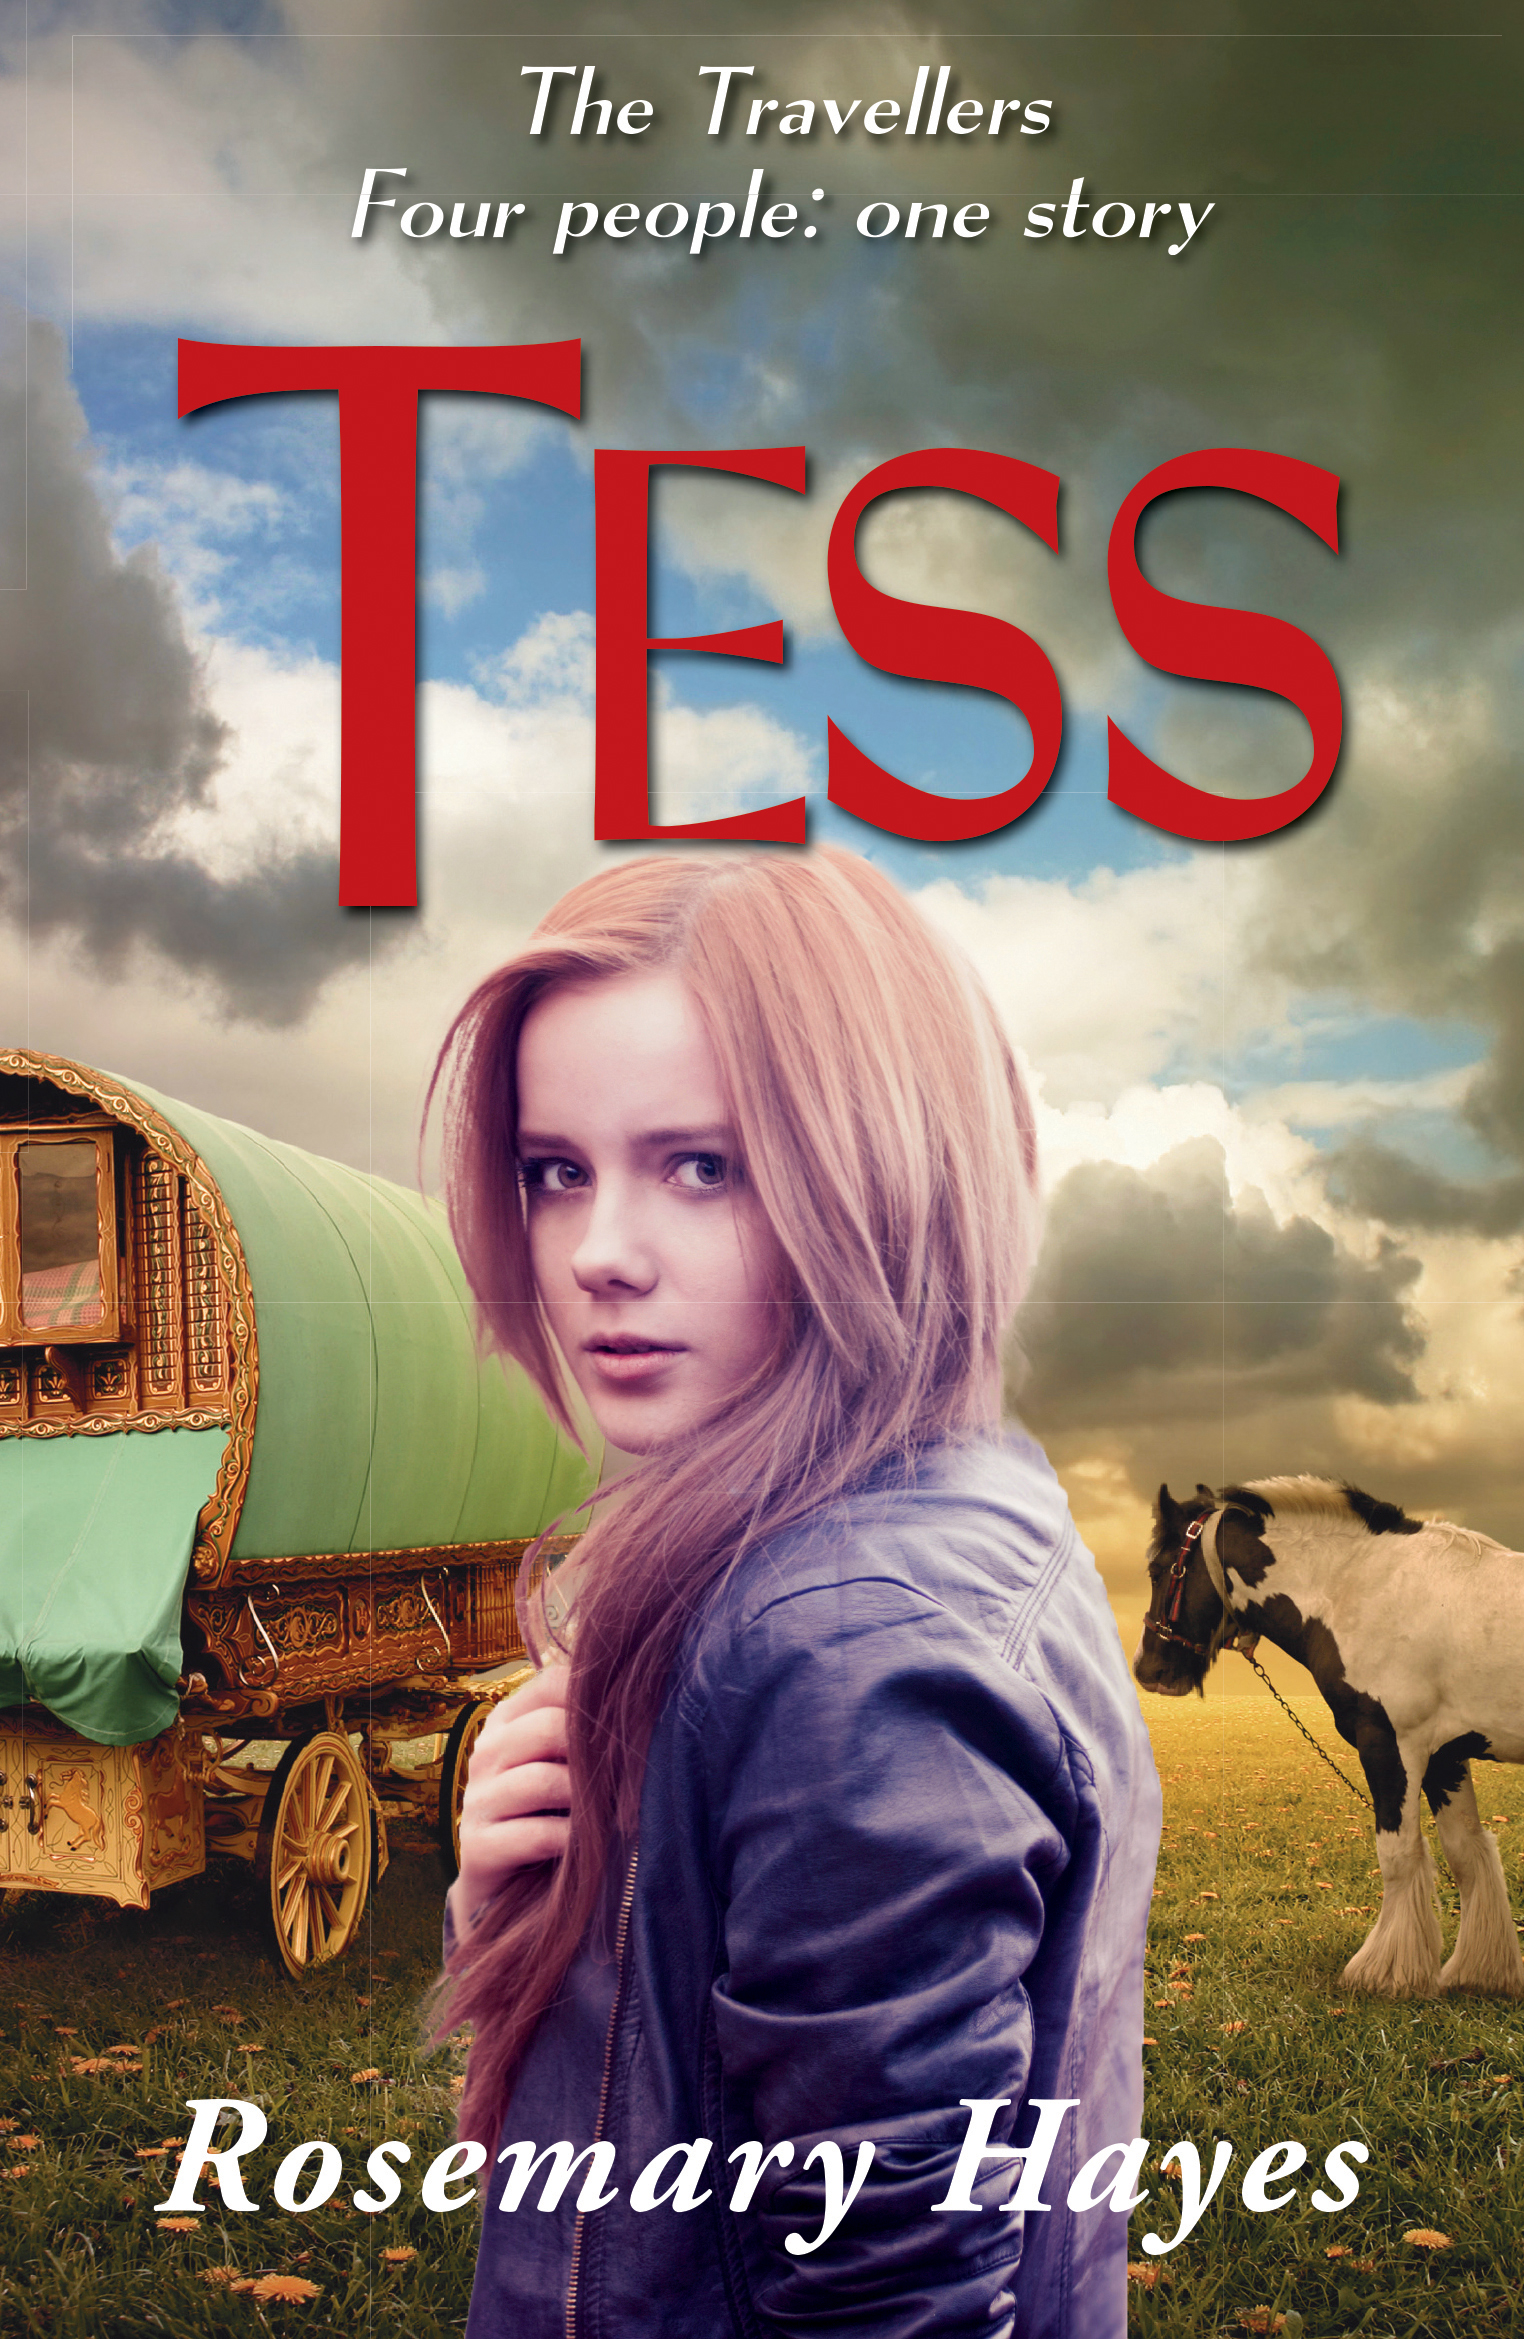 essays on tess of the dubervilles